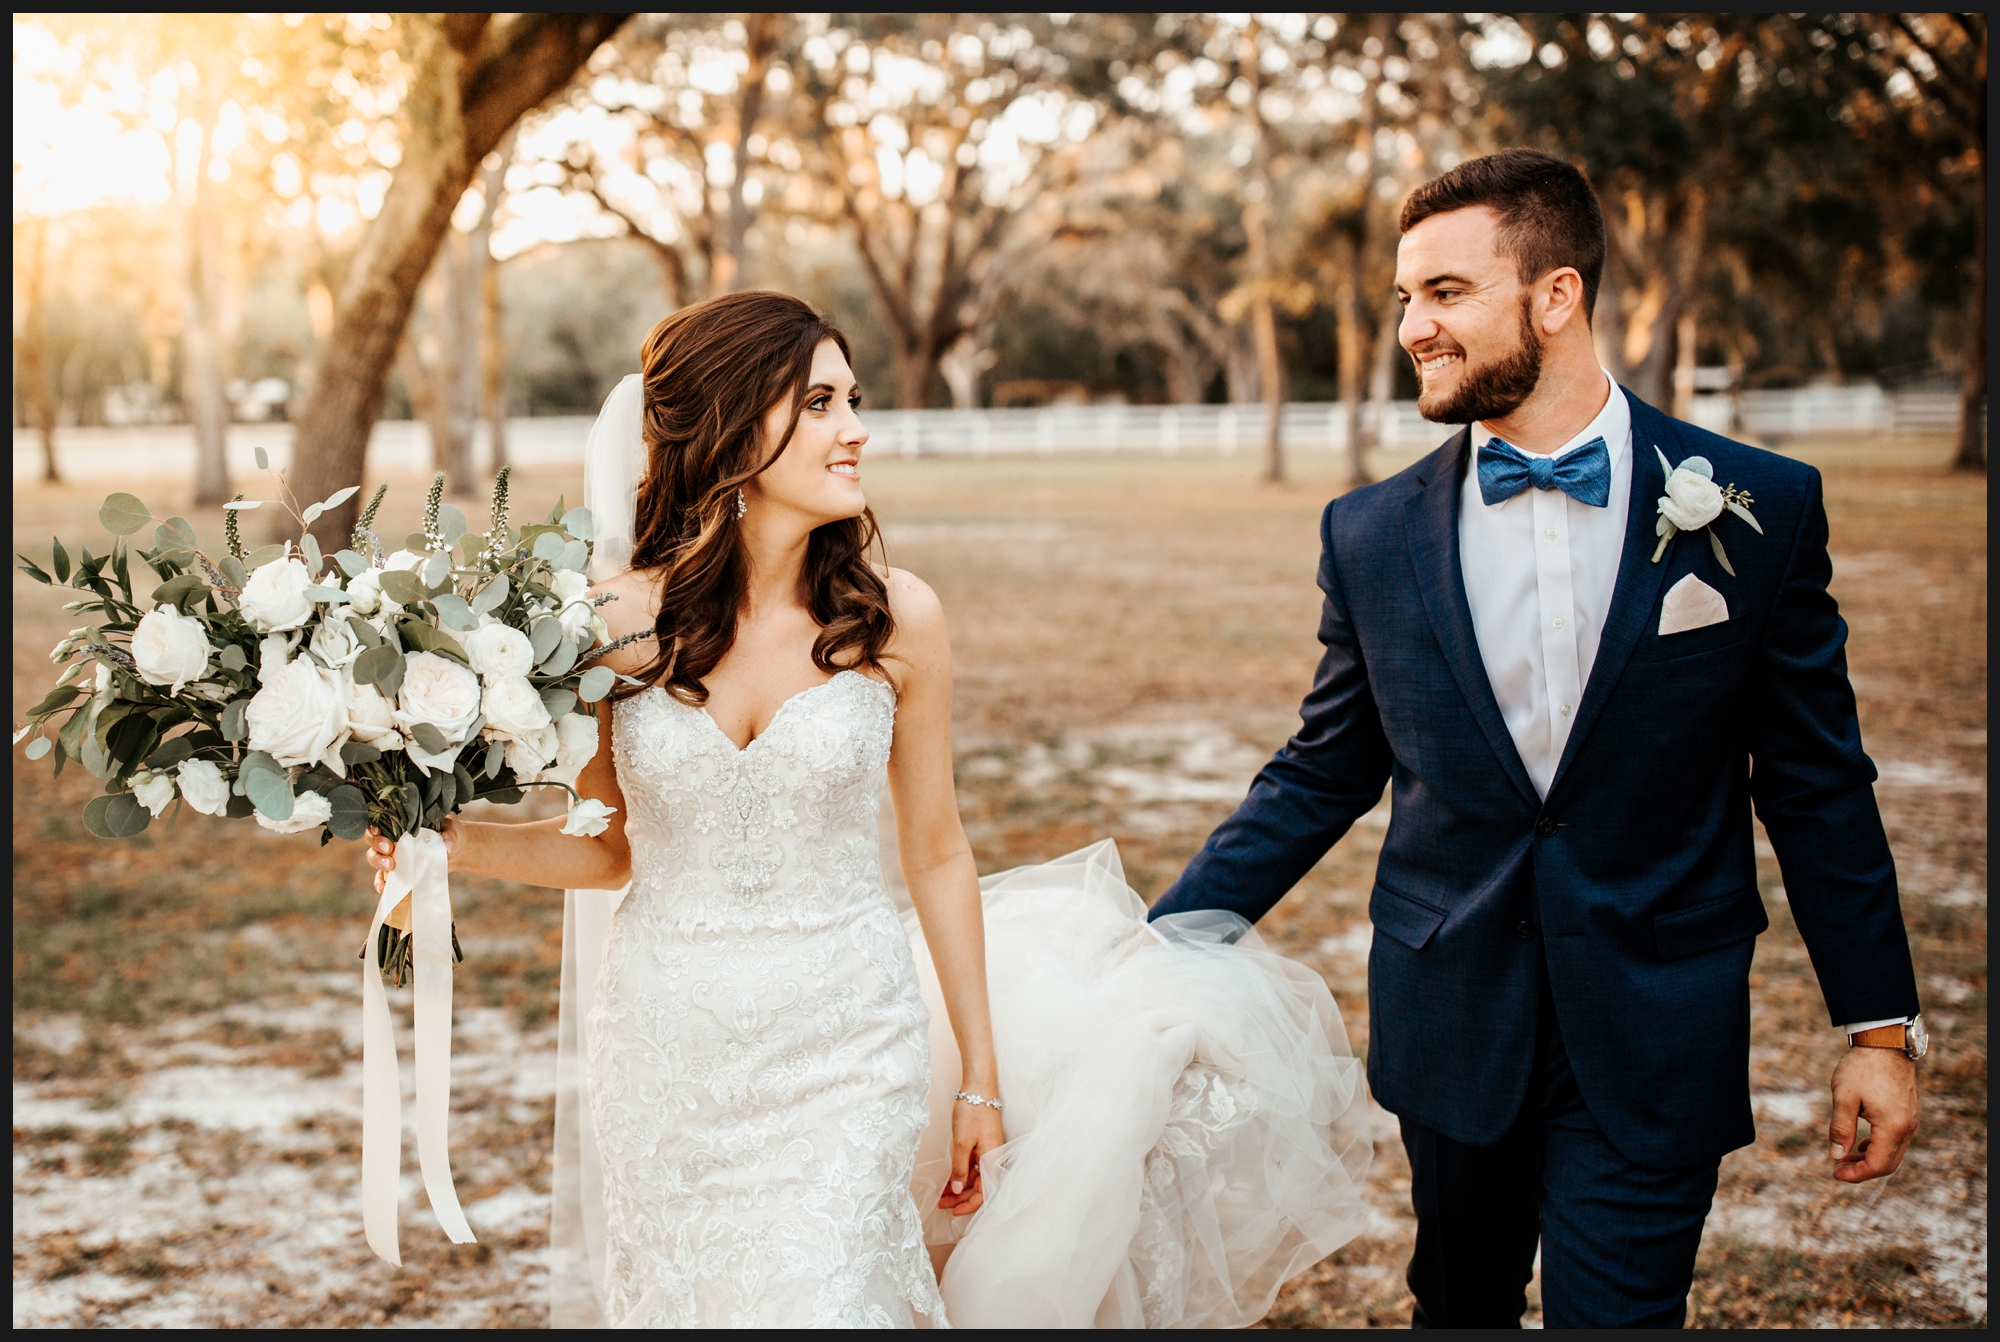 Orlando-Wedding-Photographer-destination-wedding-photographer-florida-wedding-photographer-bohemian-wedding-photographer_1107.jpg